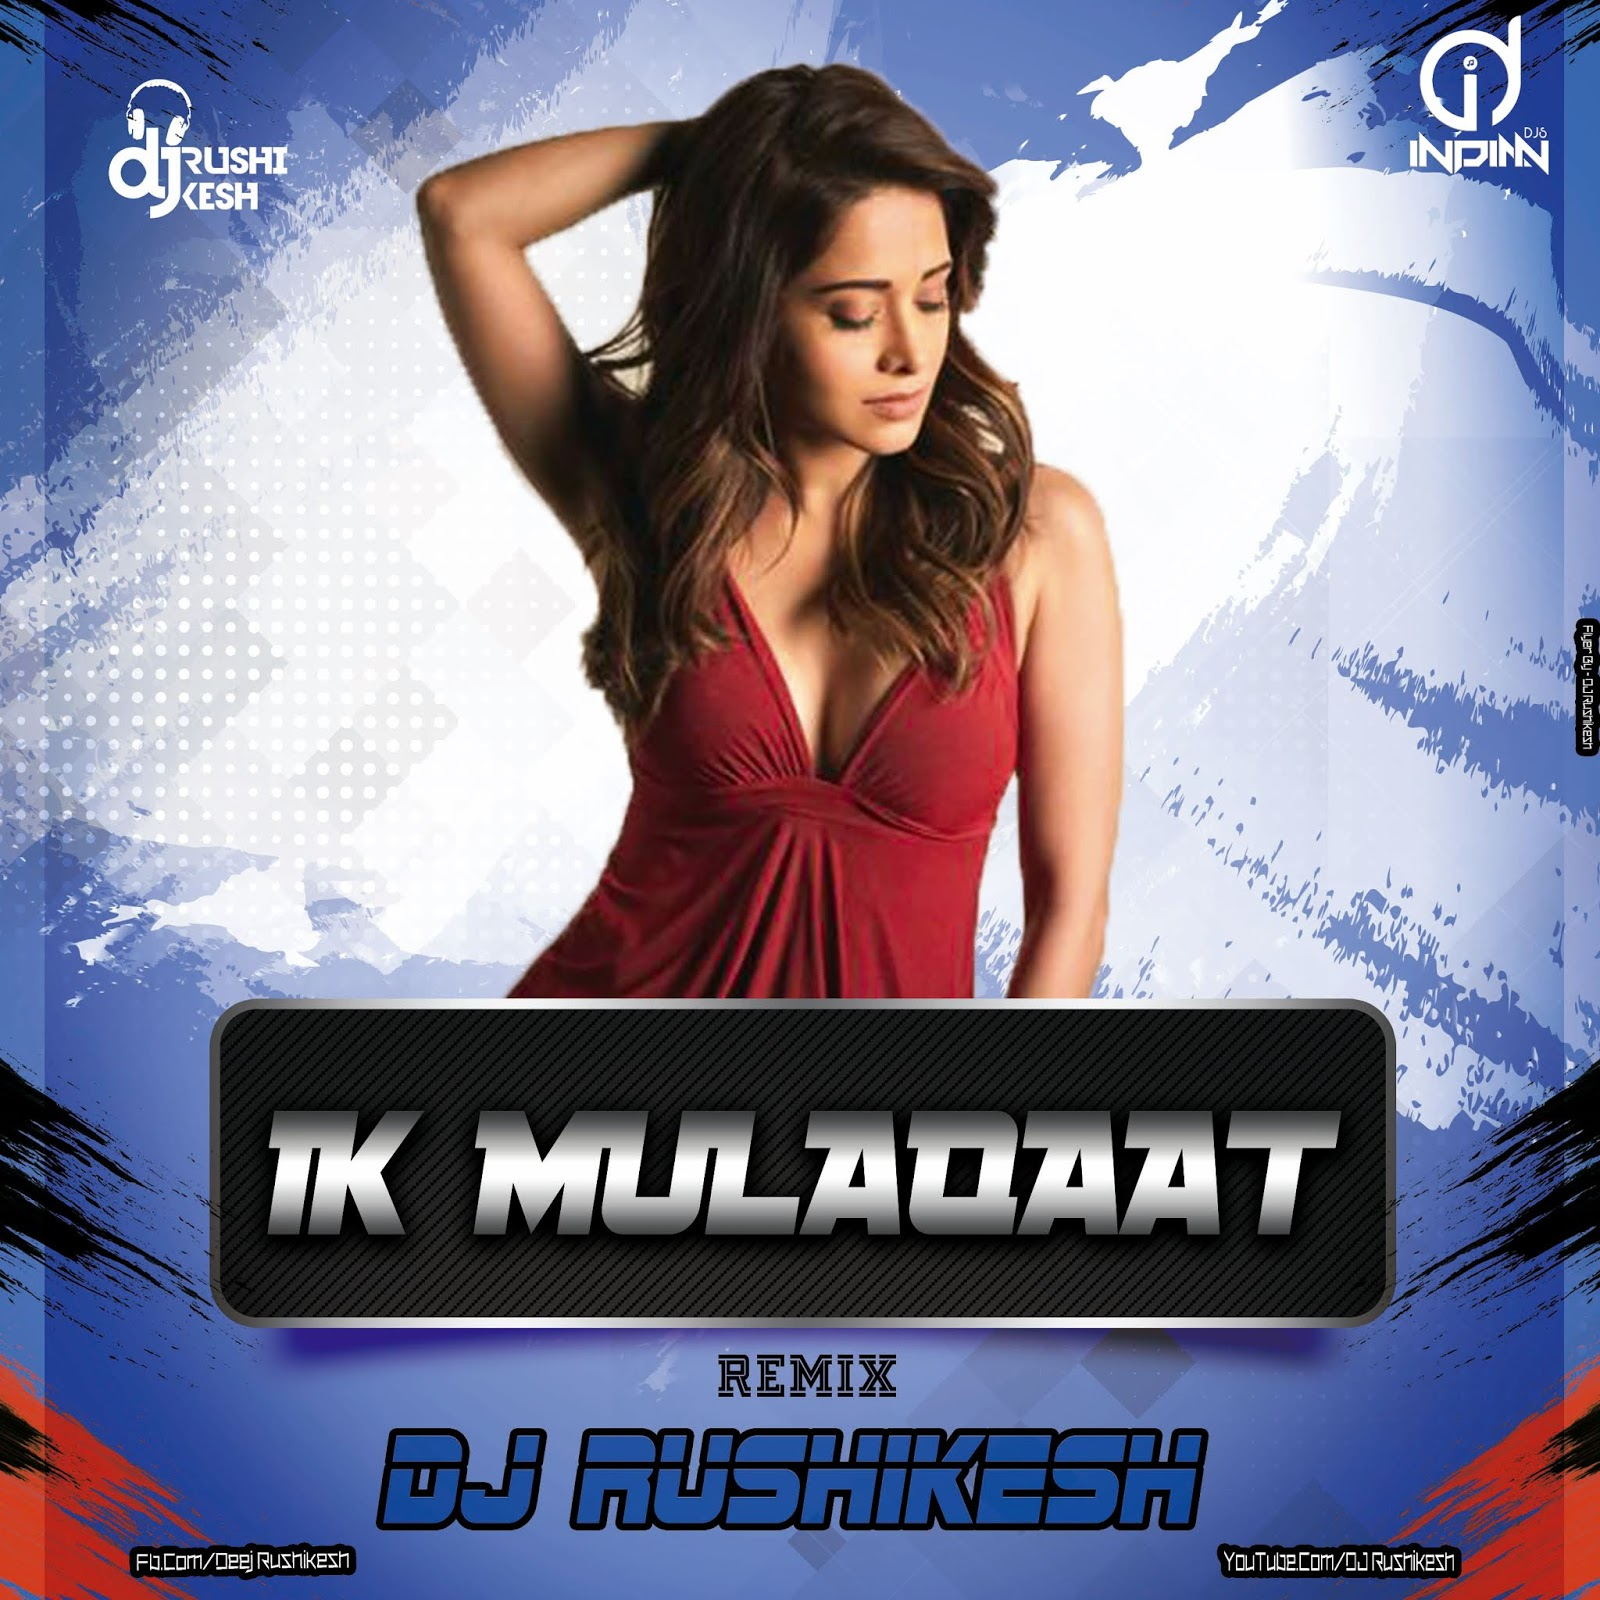 ID,INDIANDJS,djs song,bollywood song mp3 download,hindi song,dj remixes,download djs,dj remixes song download,songs download dj remix,indian dj remixes,remix dj song,hindi song in dj,